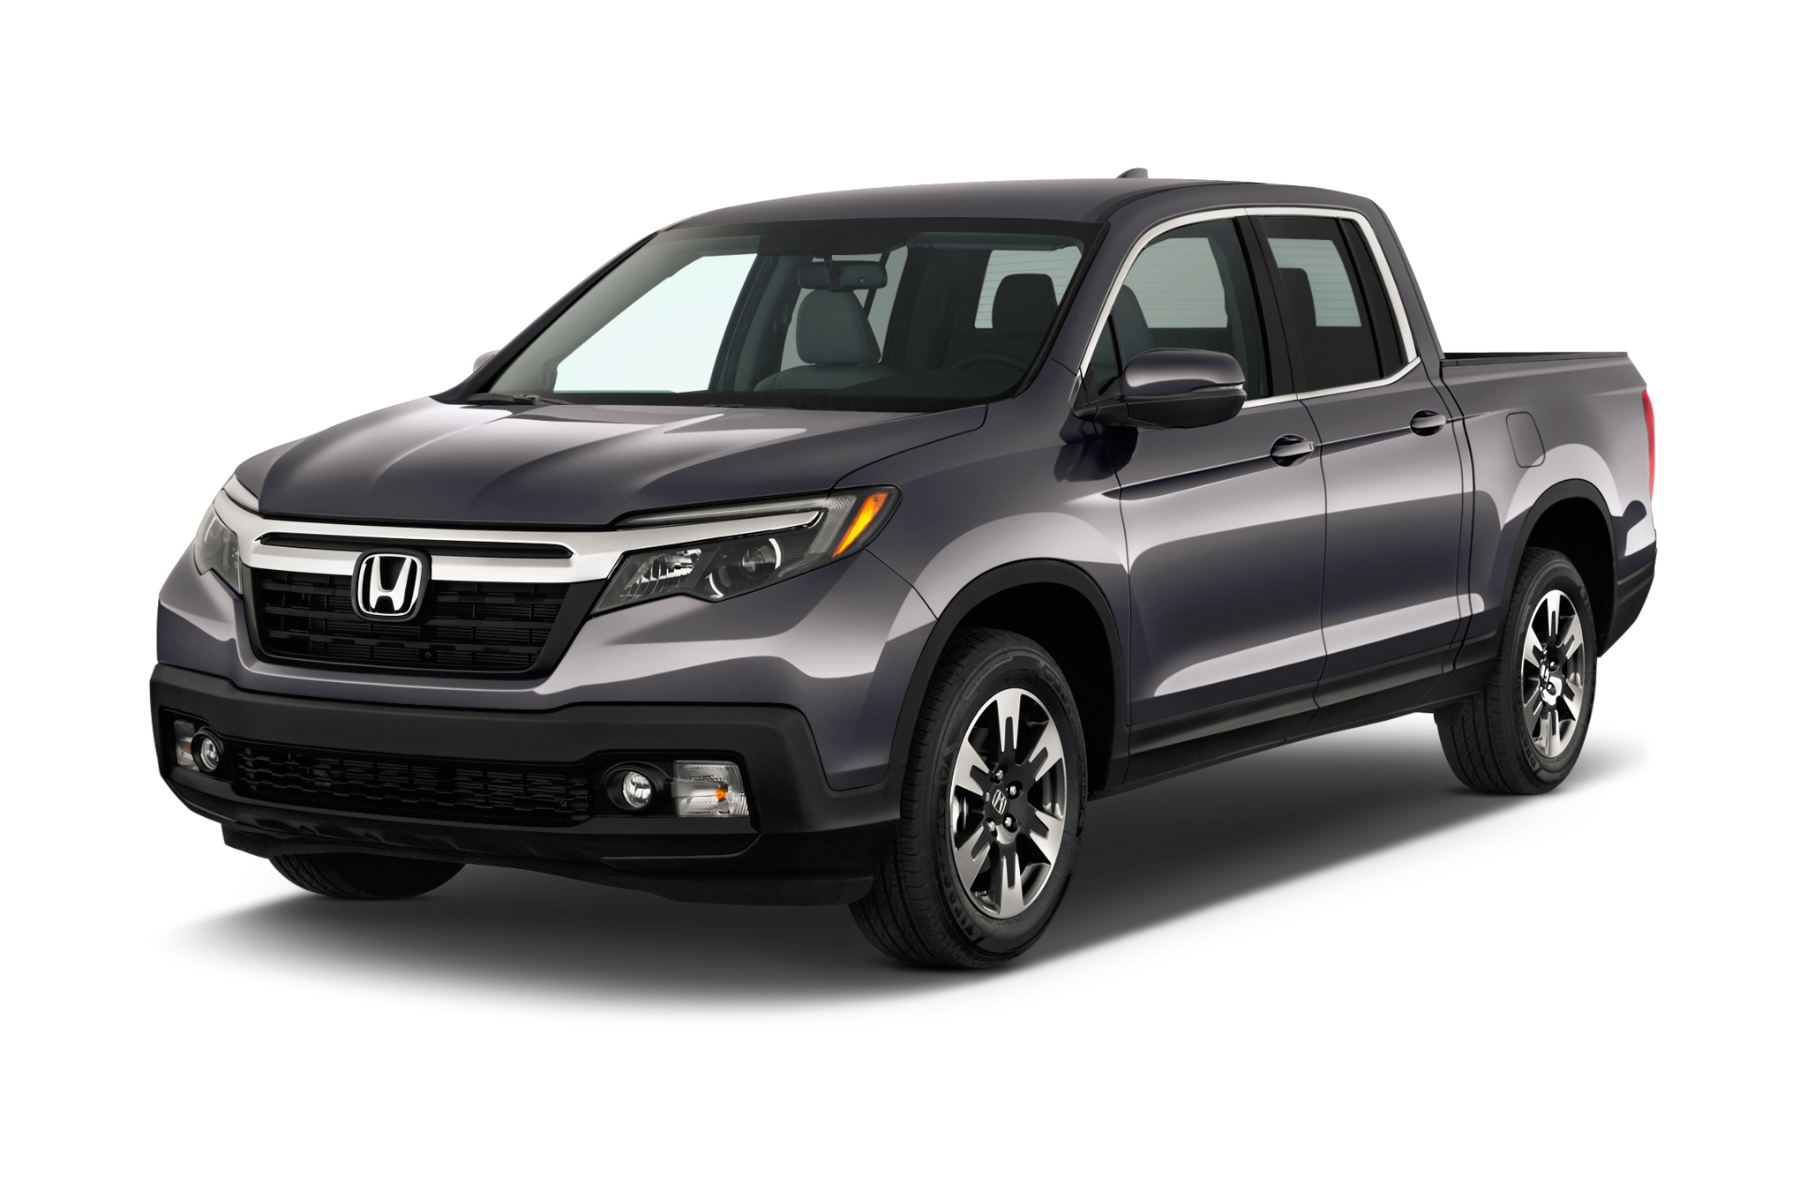 2017 Honda Ridgeline The New Benchmark For Mid Size